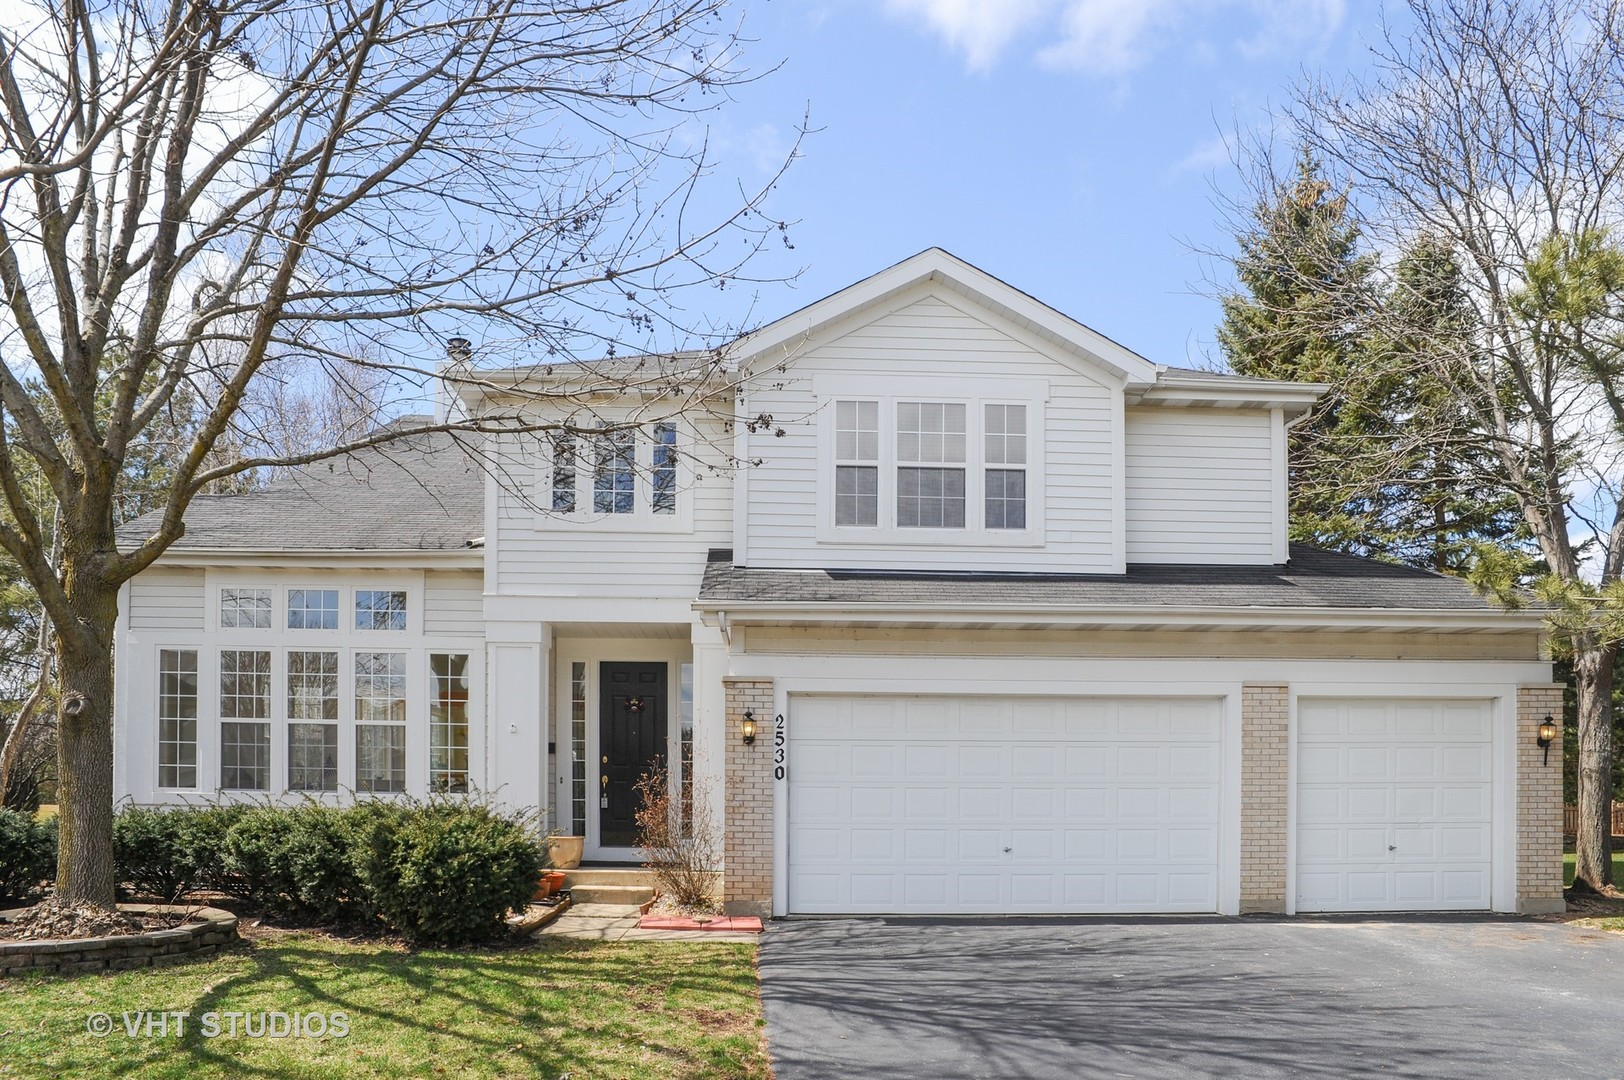 2530 Apple Hill Court, Buffalo Grove in Lake County, IL 60089 Home for Sale